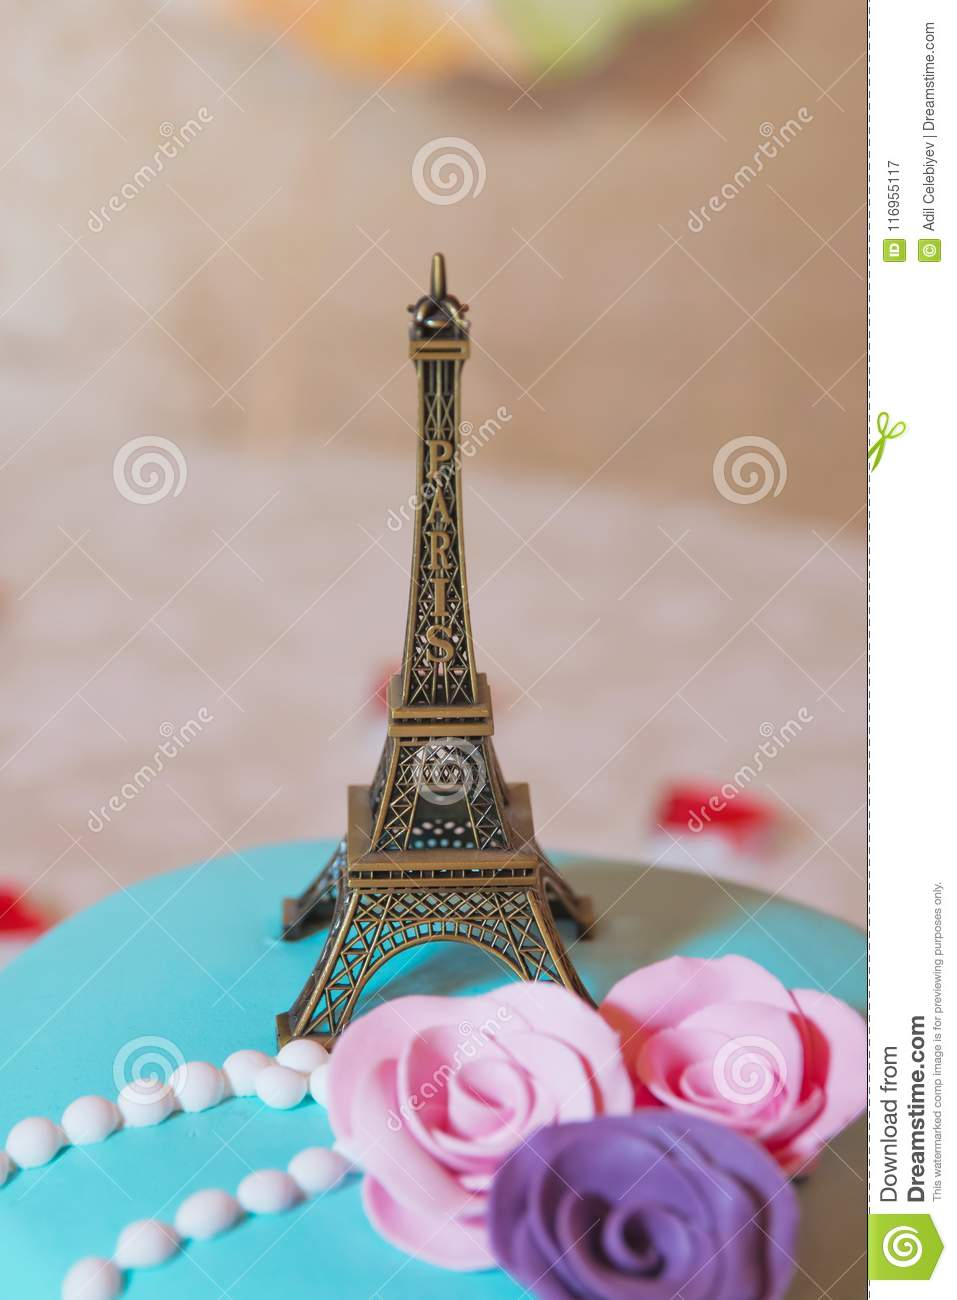 Toy Of The Eiffel Tower The Decoration And The Memory Of The